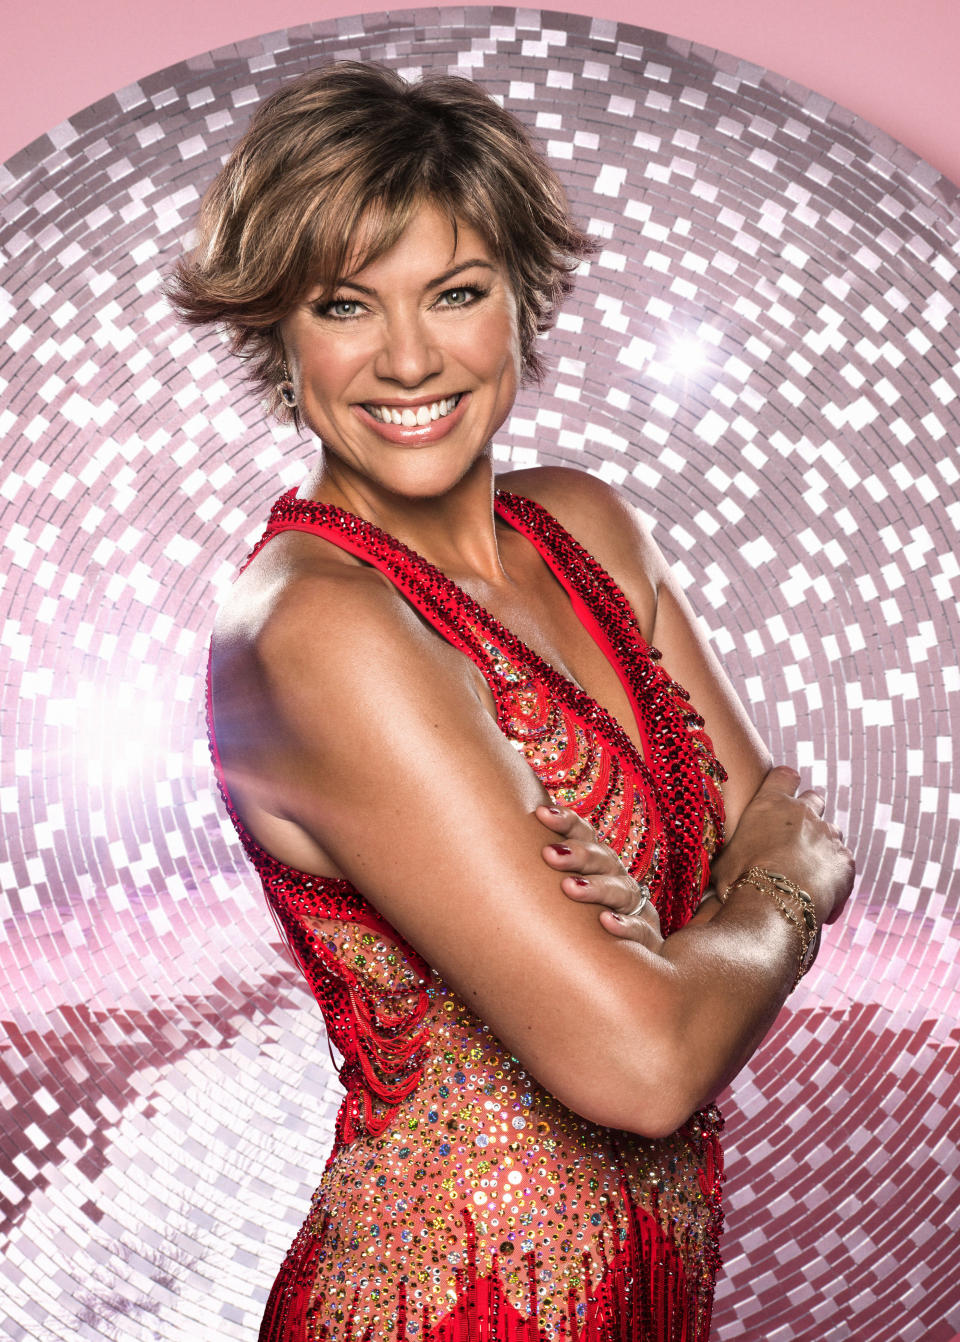 """<p>She said the whole rota of contestants are getting along right now, and no rivalries have emerged yet. """"We don't have rivals yet, I don't think we're into that, like further down the line!"""" she joked. (BBC Pictures) </p>"""